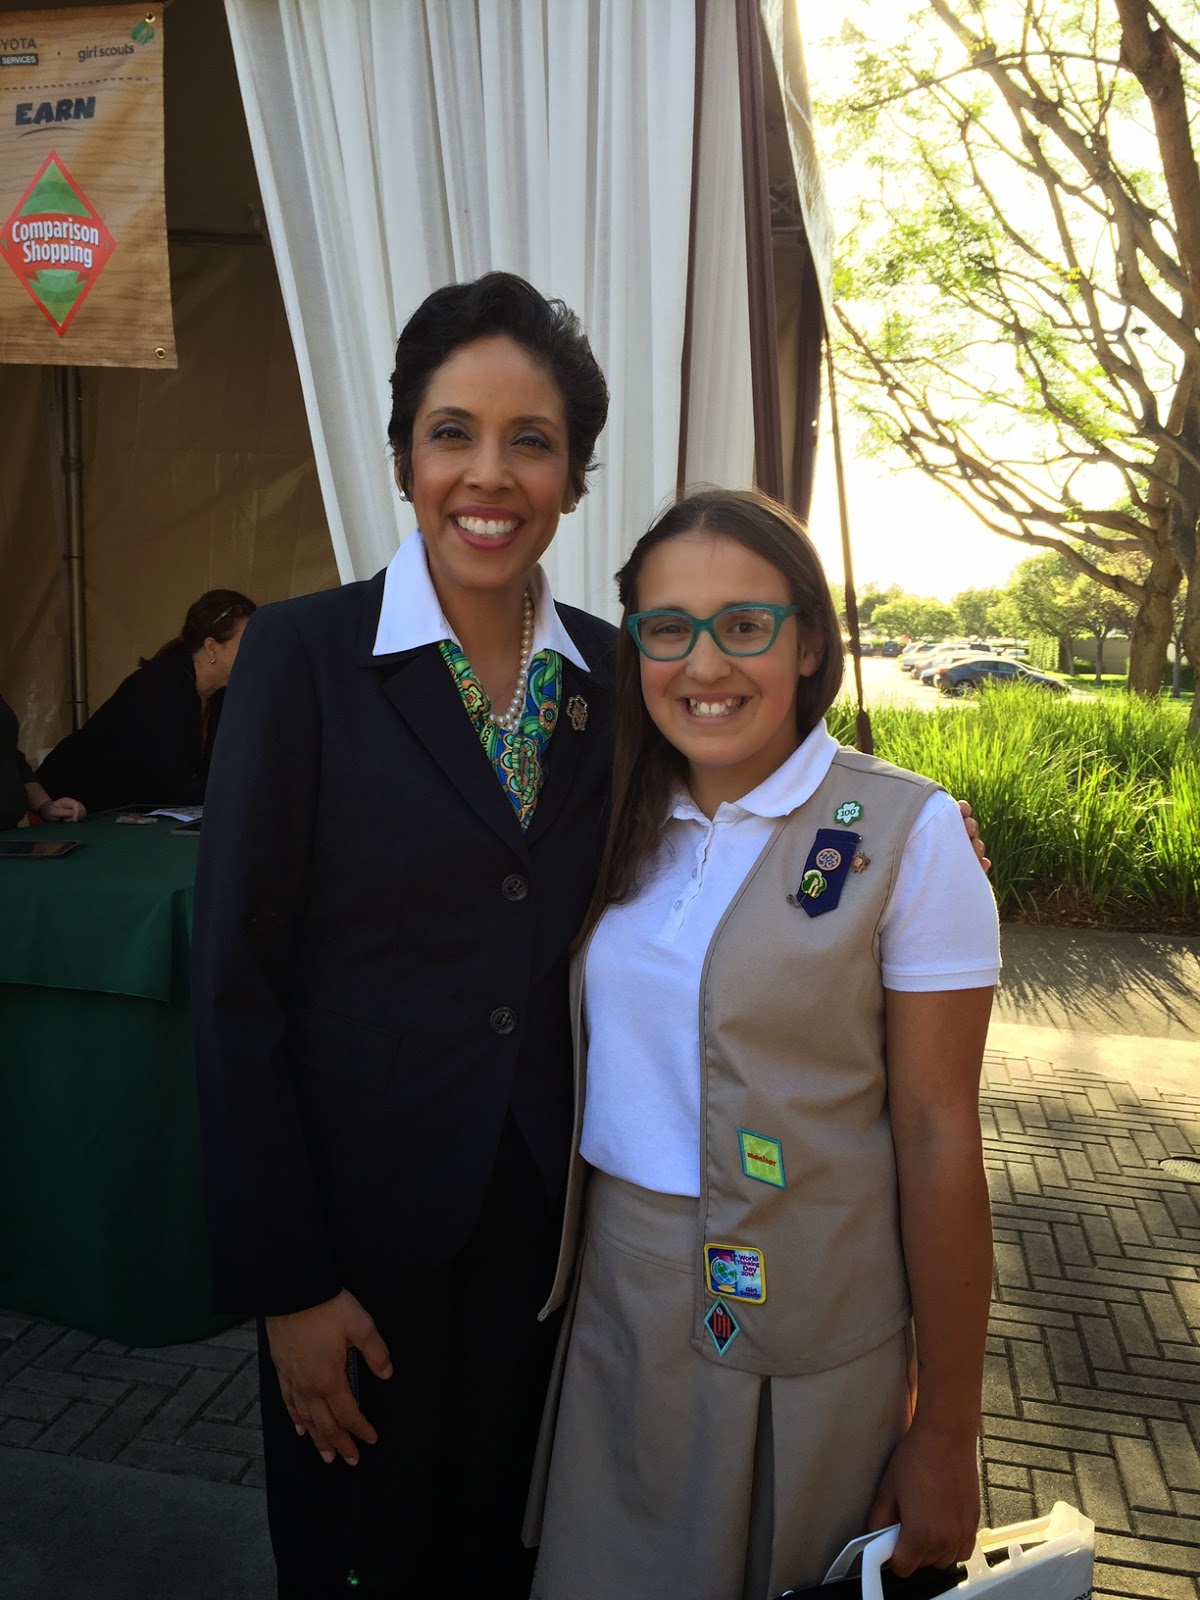 Anna Marie Chavez, CEO of Girl Scouts of the USA